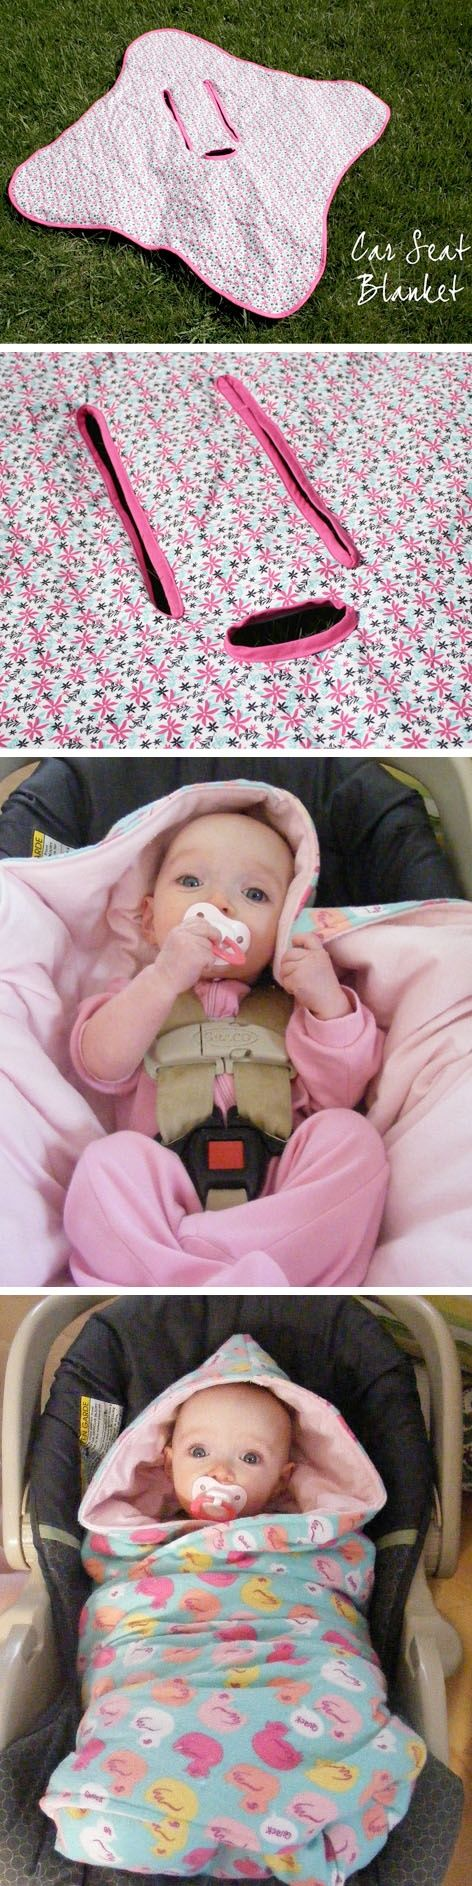 DIY: Baby car seat blanket  Clever idea to remember for next time!